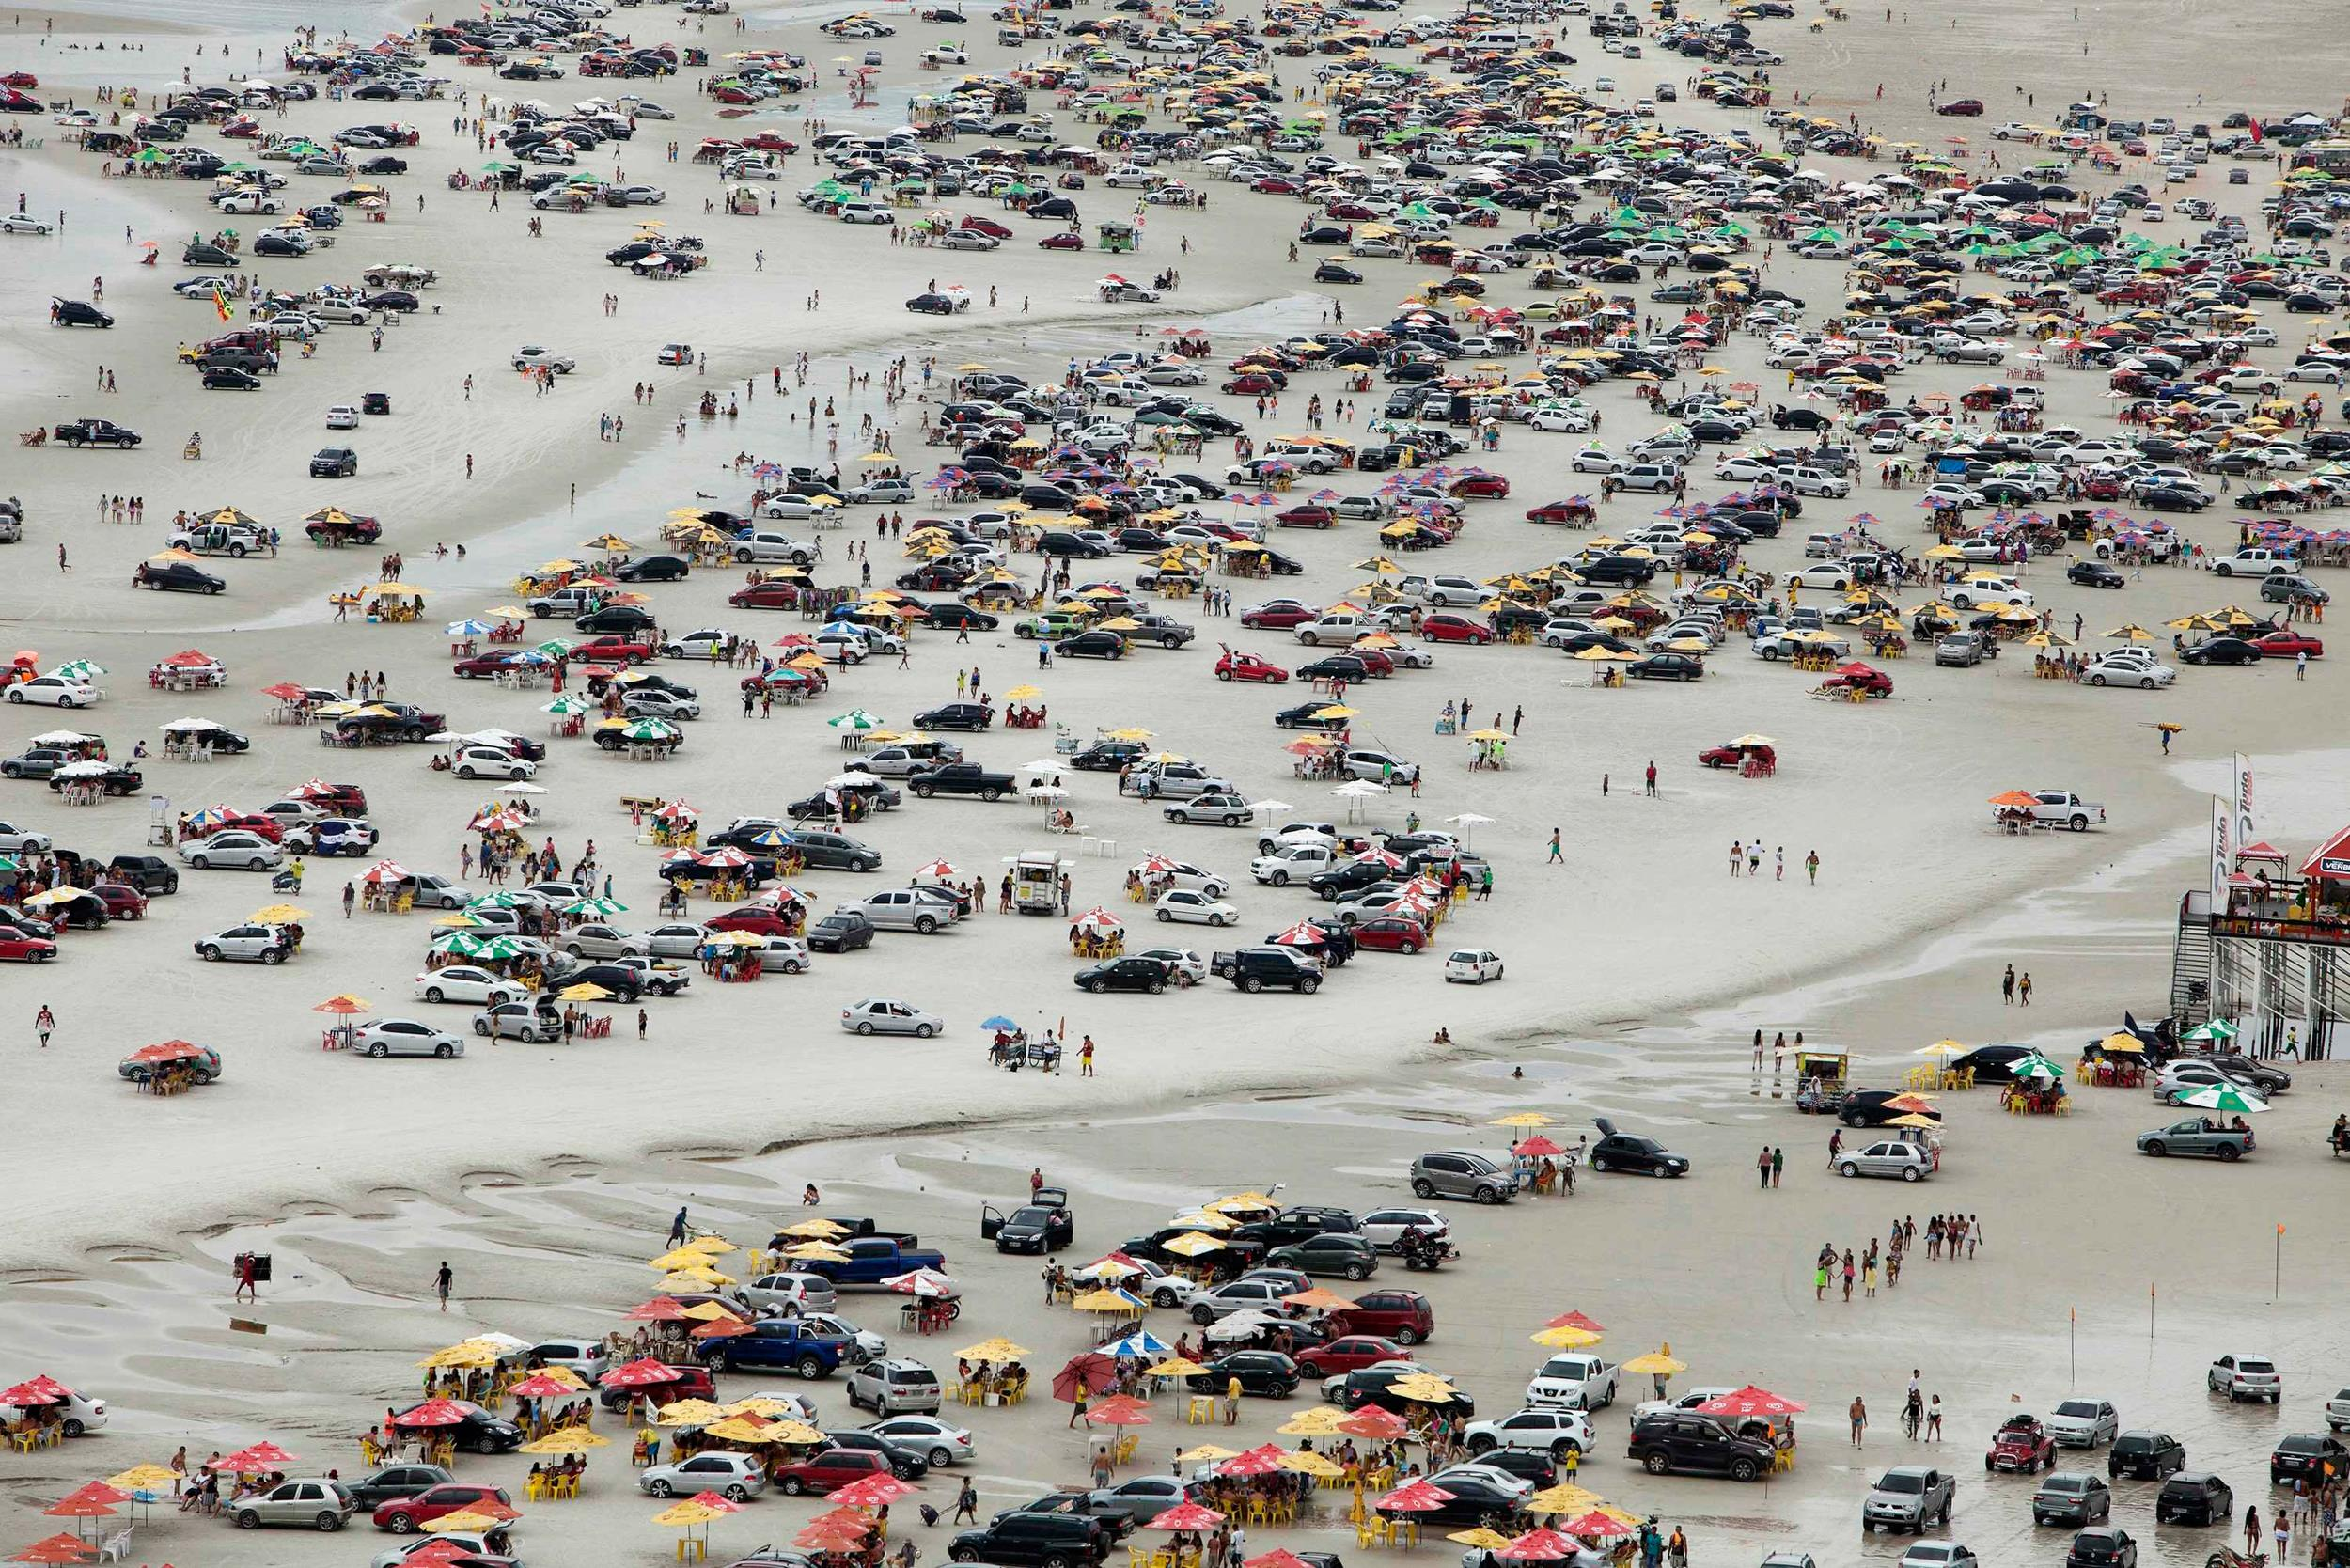 Image: A view of thousands of beachgoers during the peak of the summer vacation season on Atalaia beach in Salinopolis